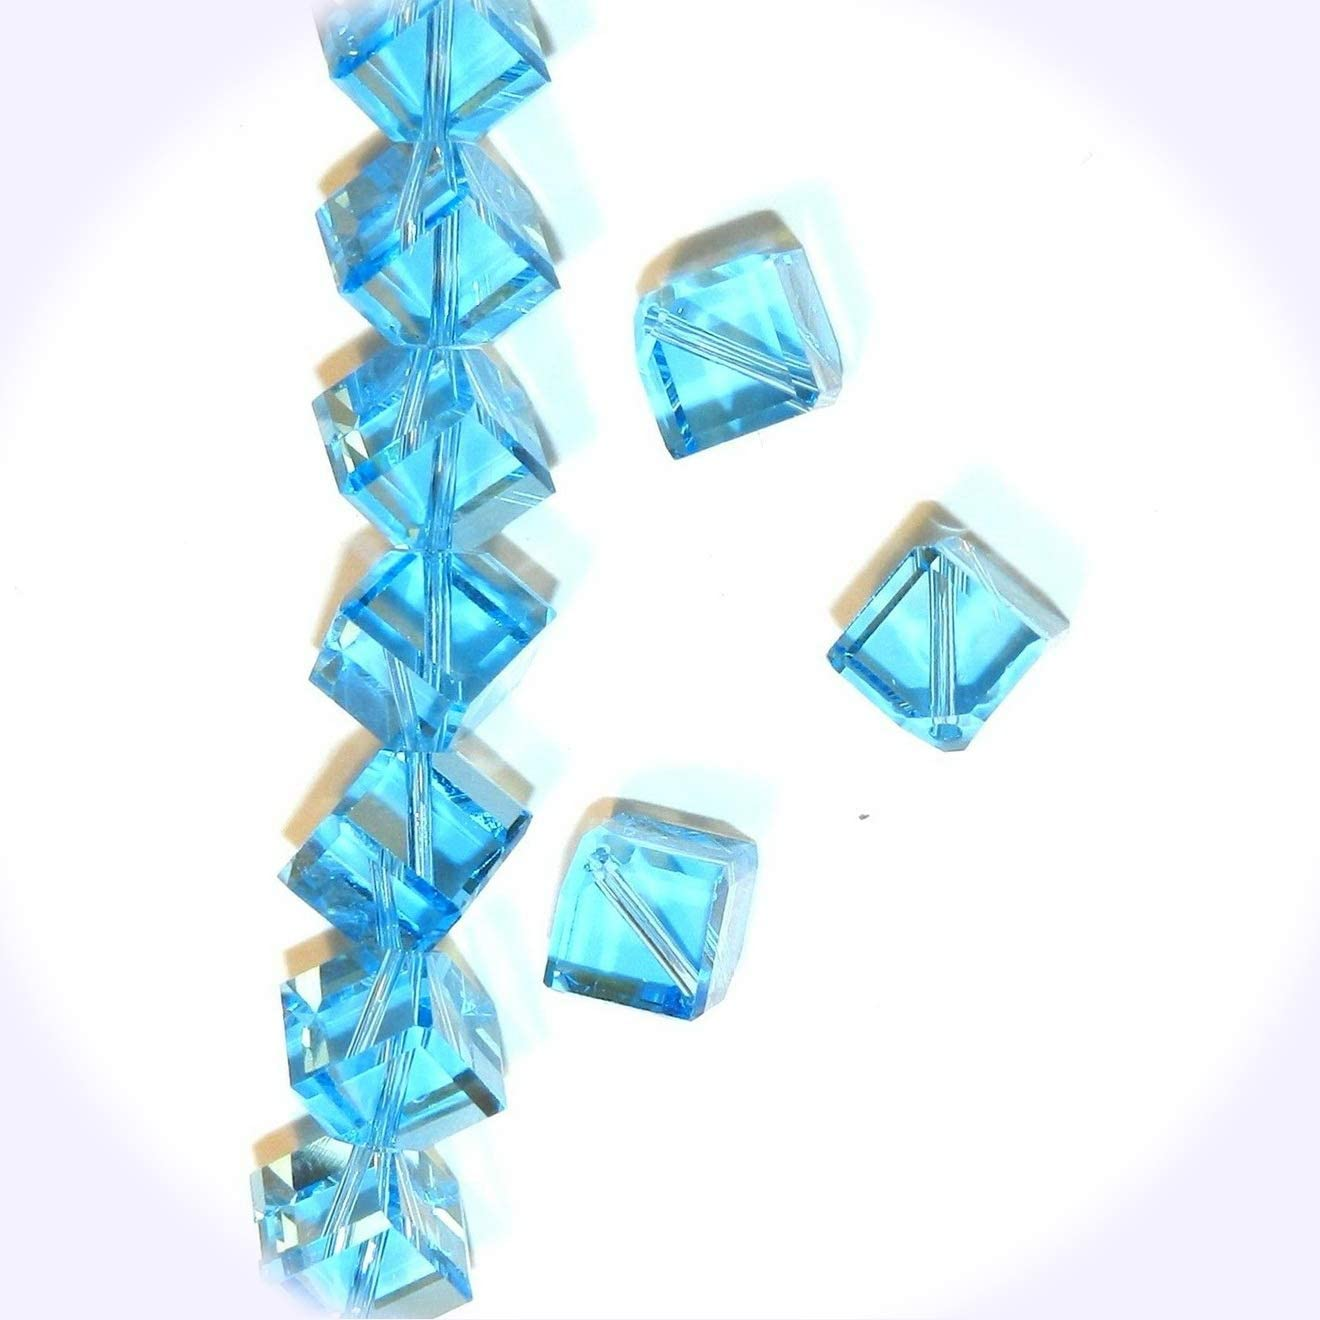 New Aquamarine Blue 8mm Square Diamond Dice Crystal Jewelry-Making Beads 12pc DIY Craft Supplies for Handmade Bracelet Necklace